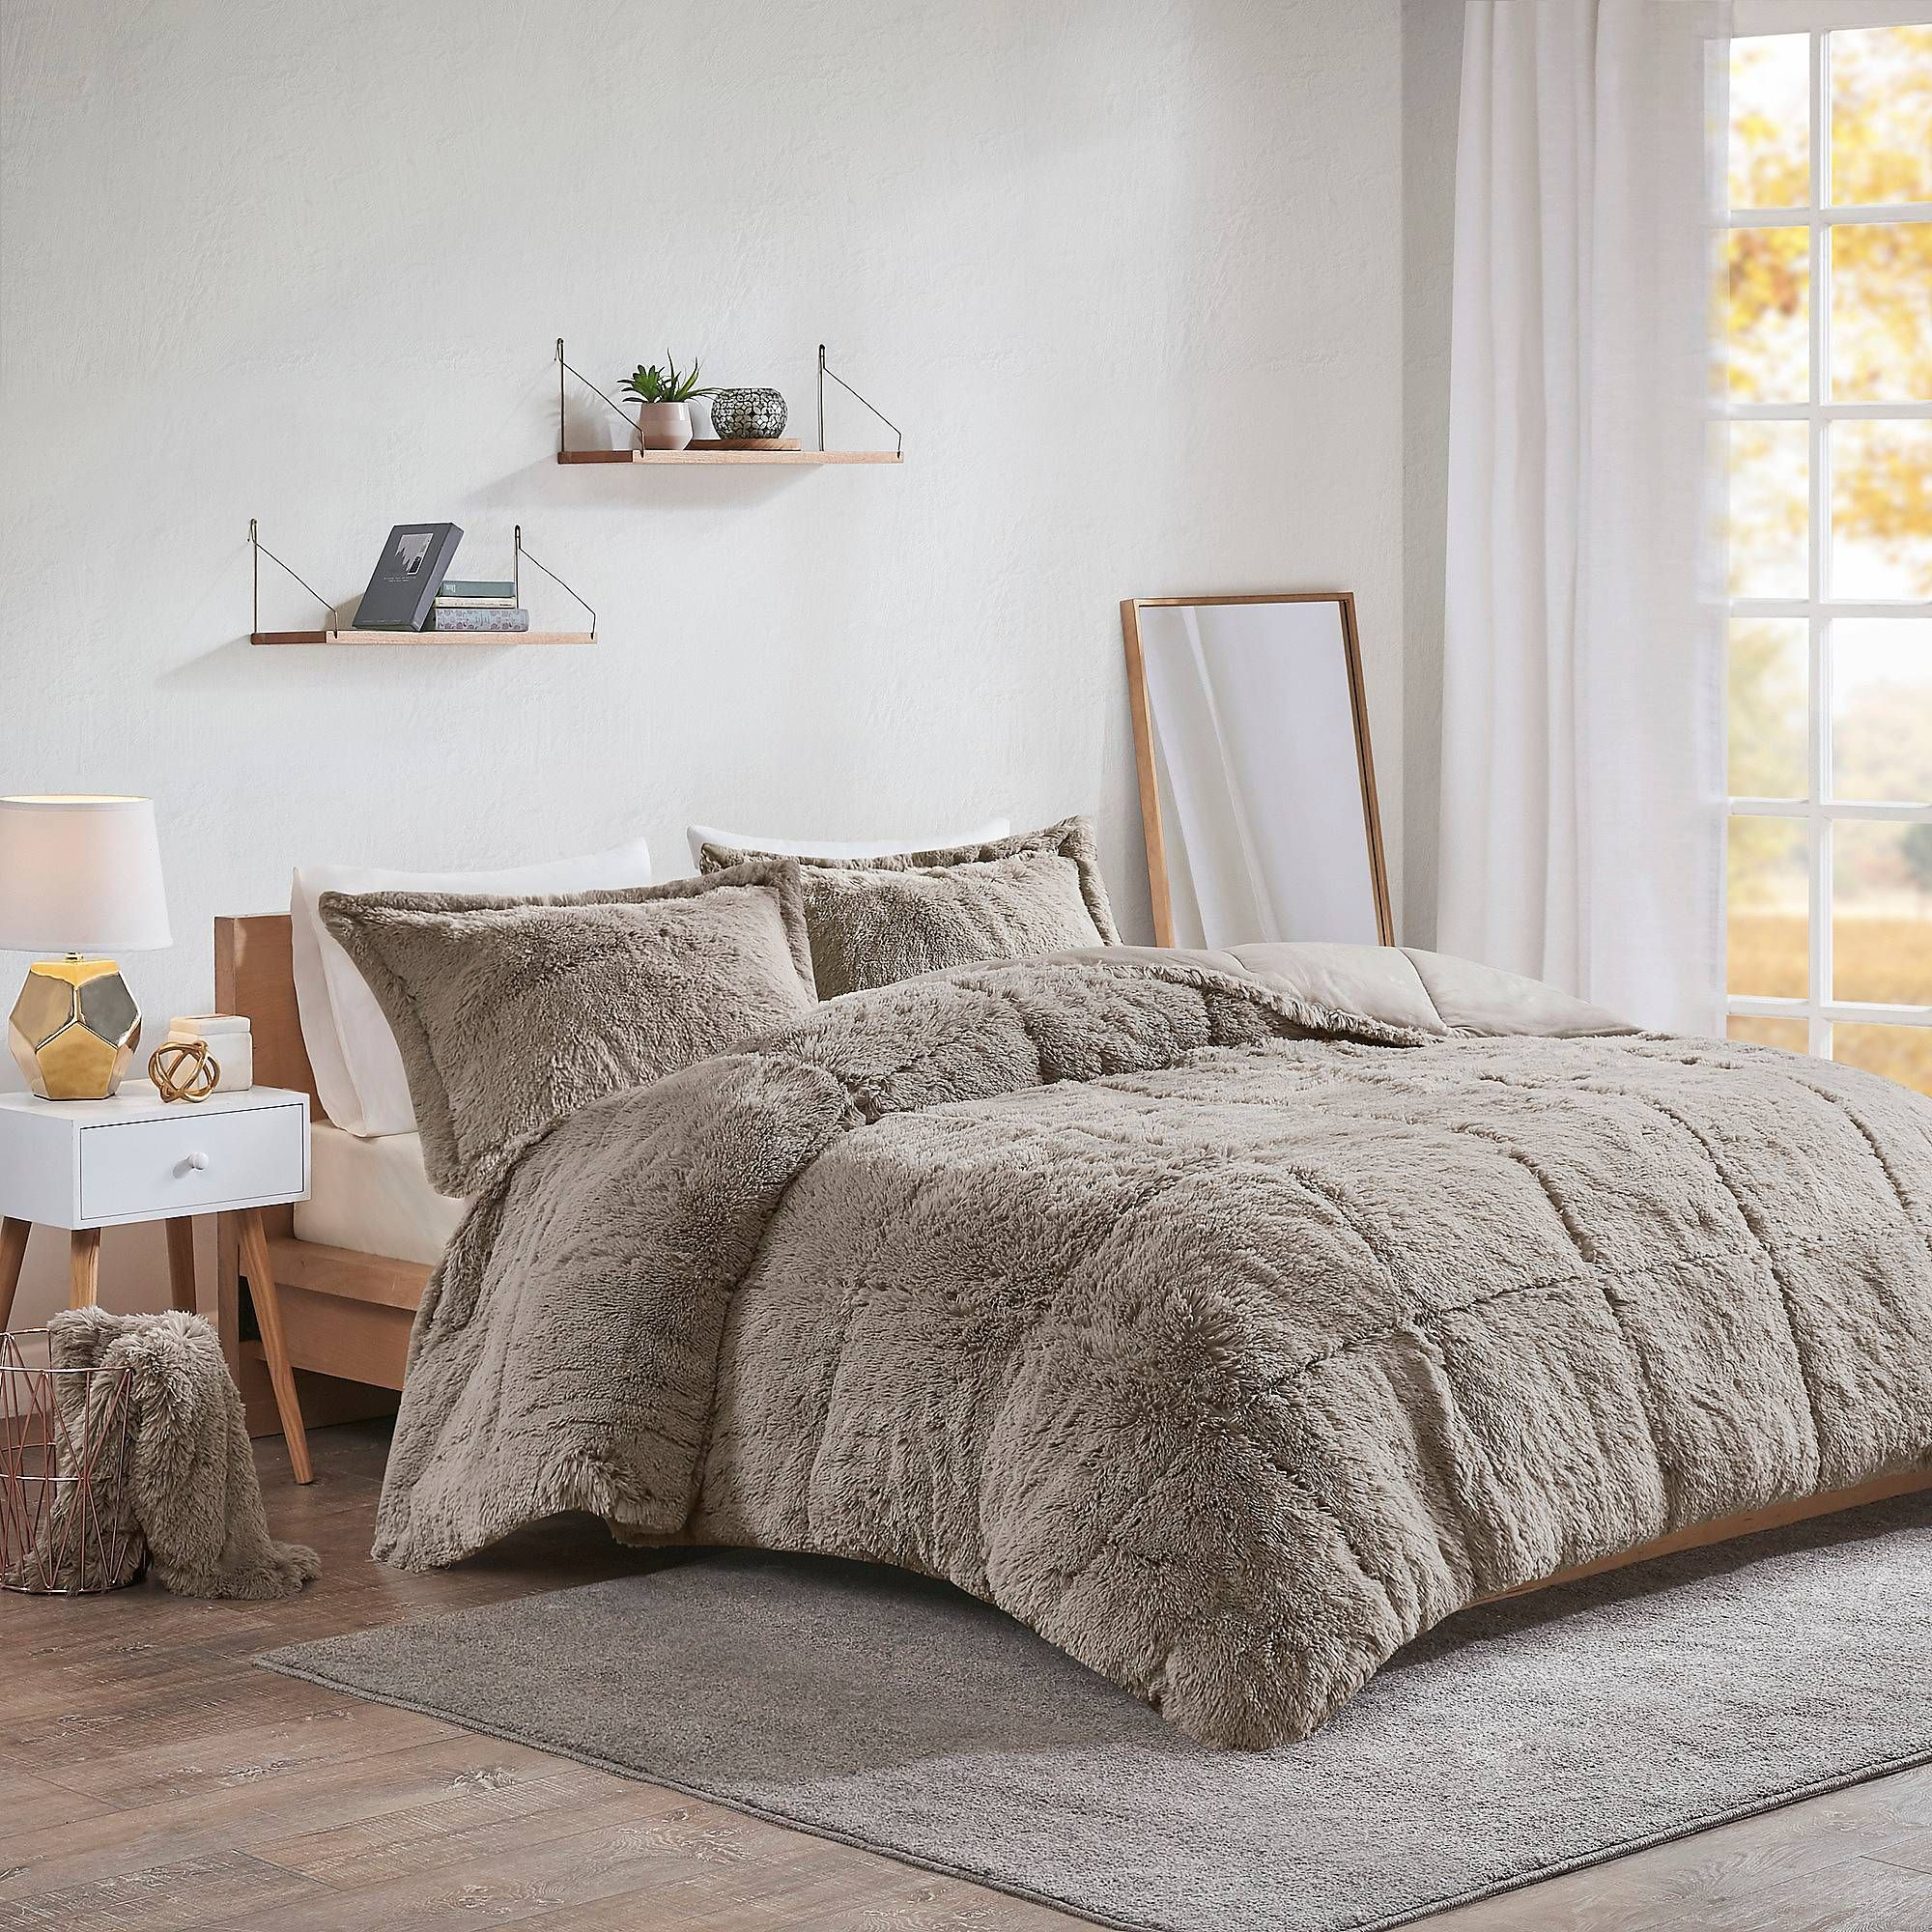 Intelligent Design Malea Shaggy Faux Fur Comforter Set Comforter Sets Fur Comforter Grey Comforter Sets